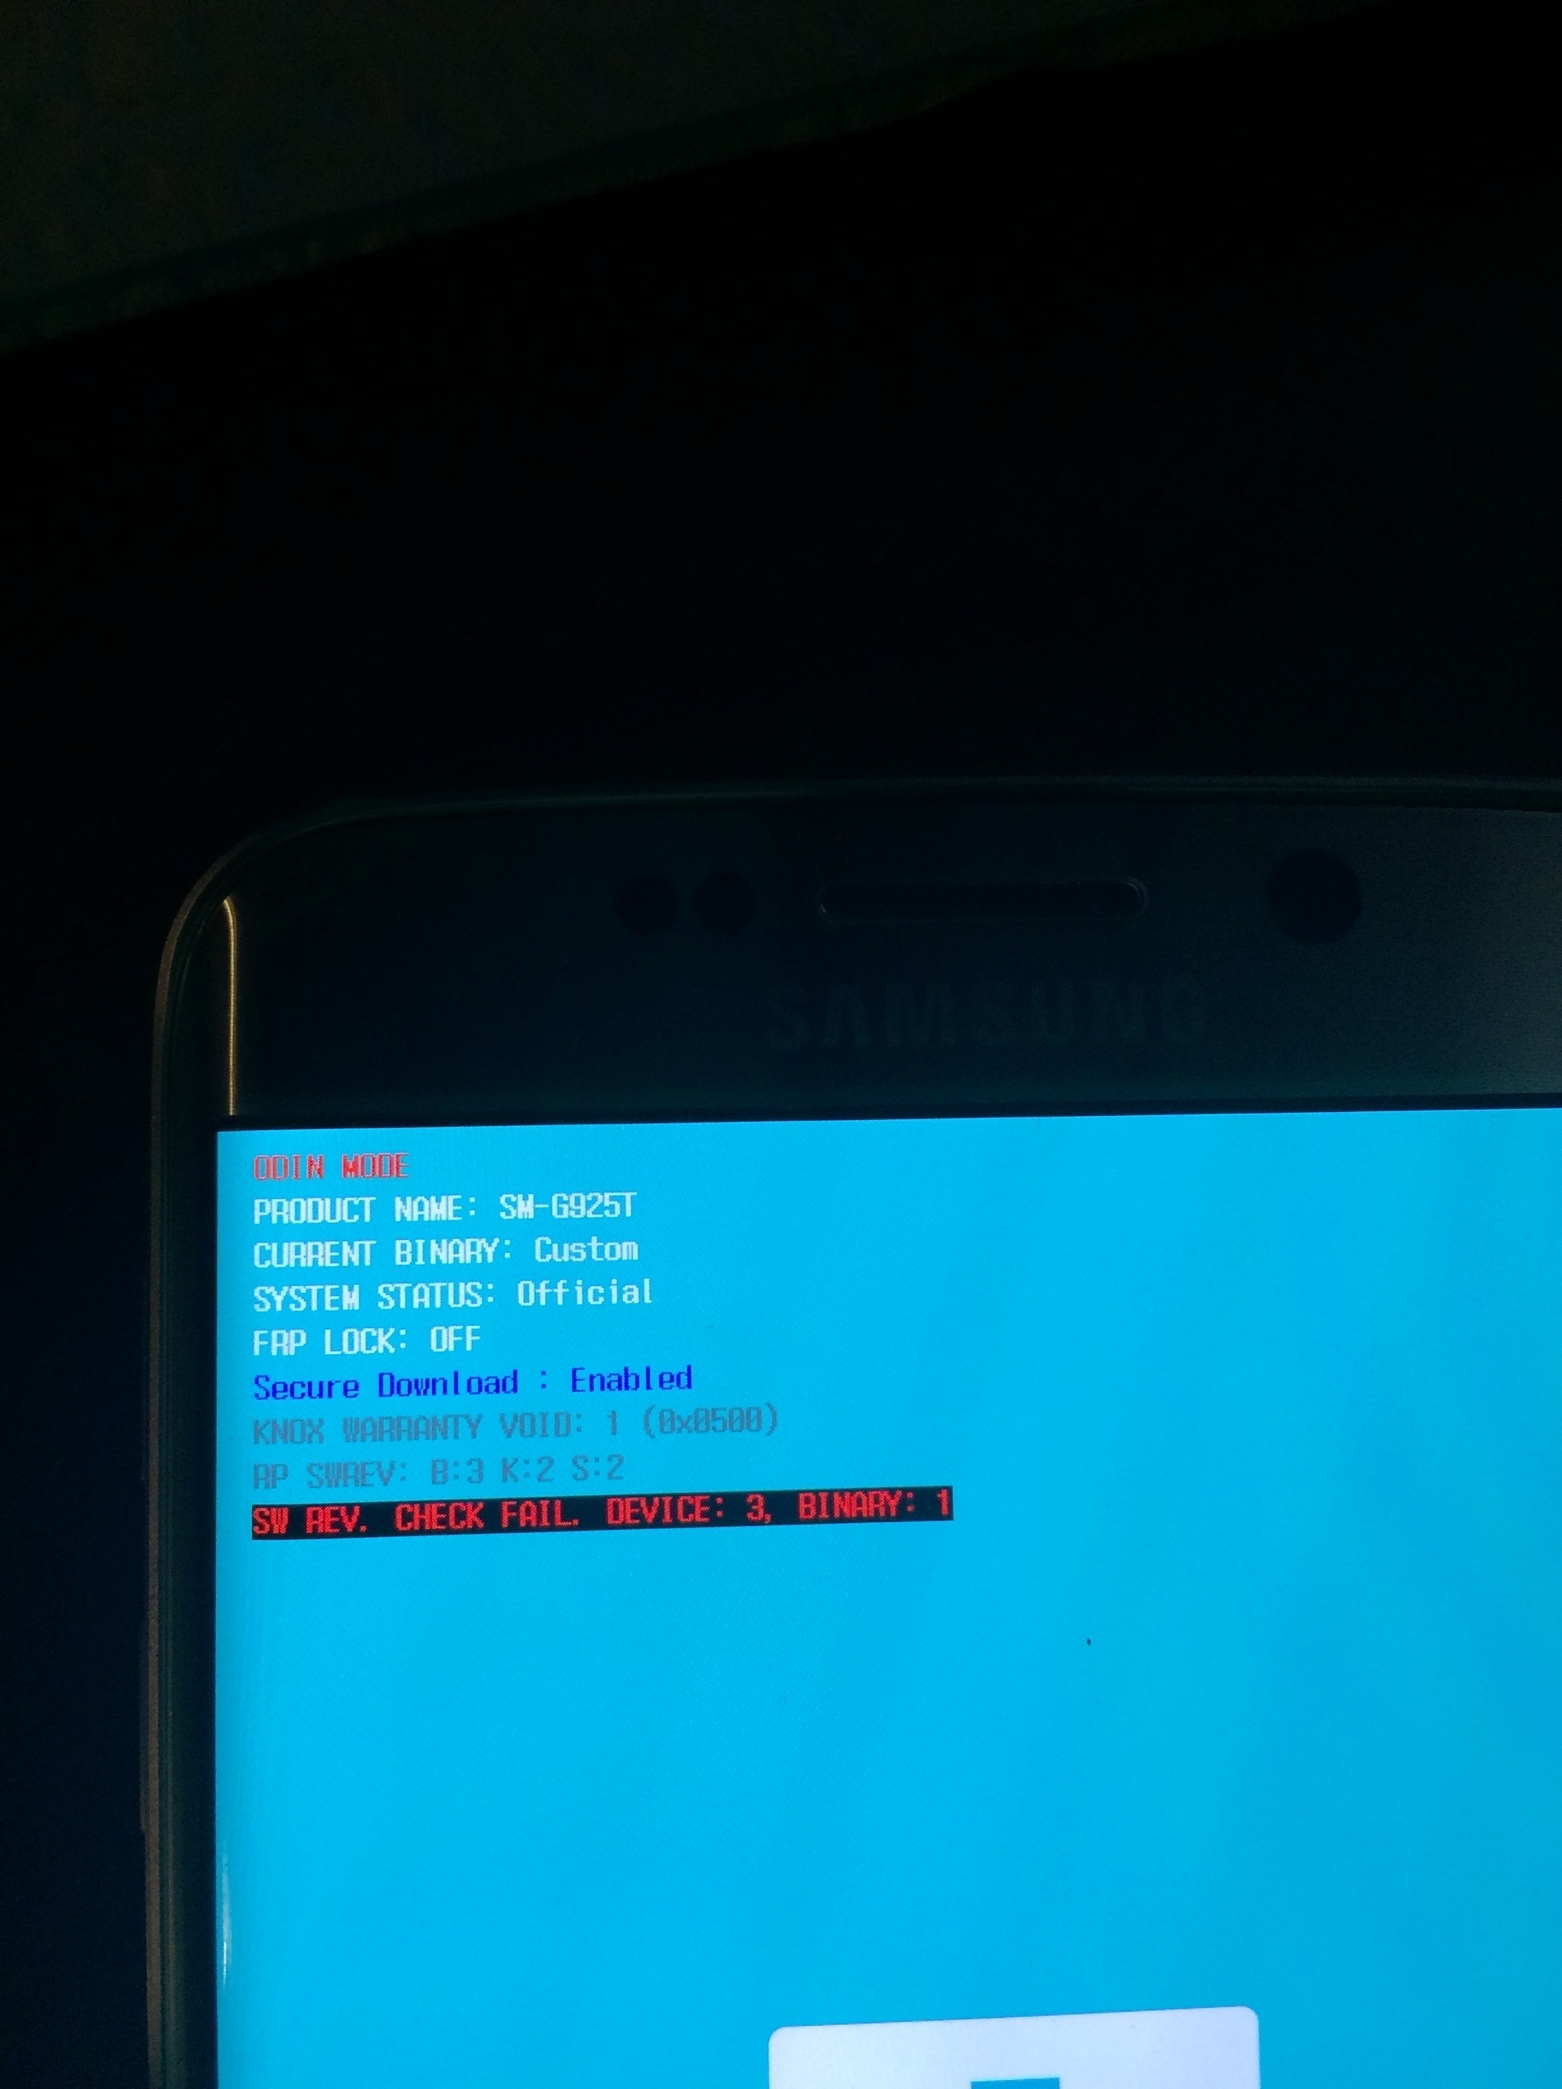 Samsung Galaxy S6 edge is stuck on boot screen saying